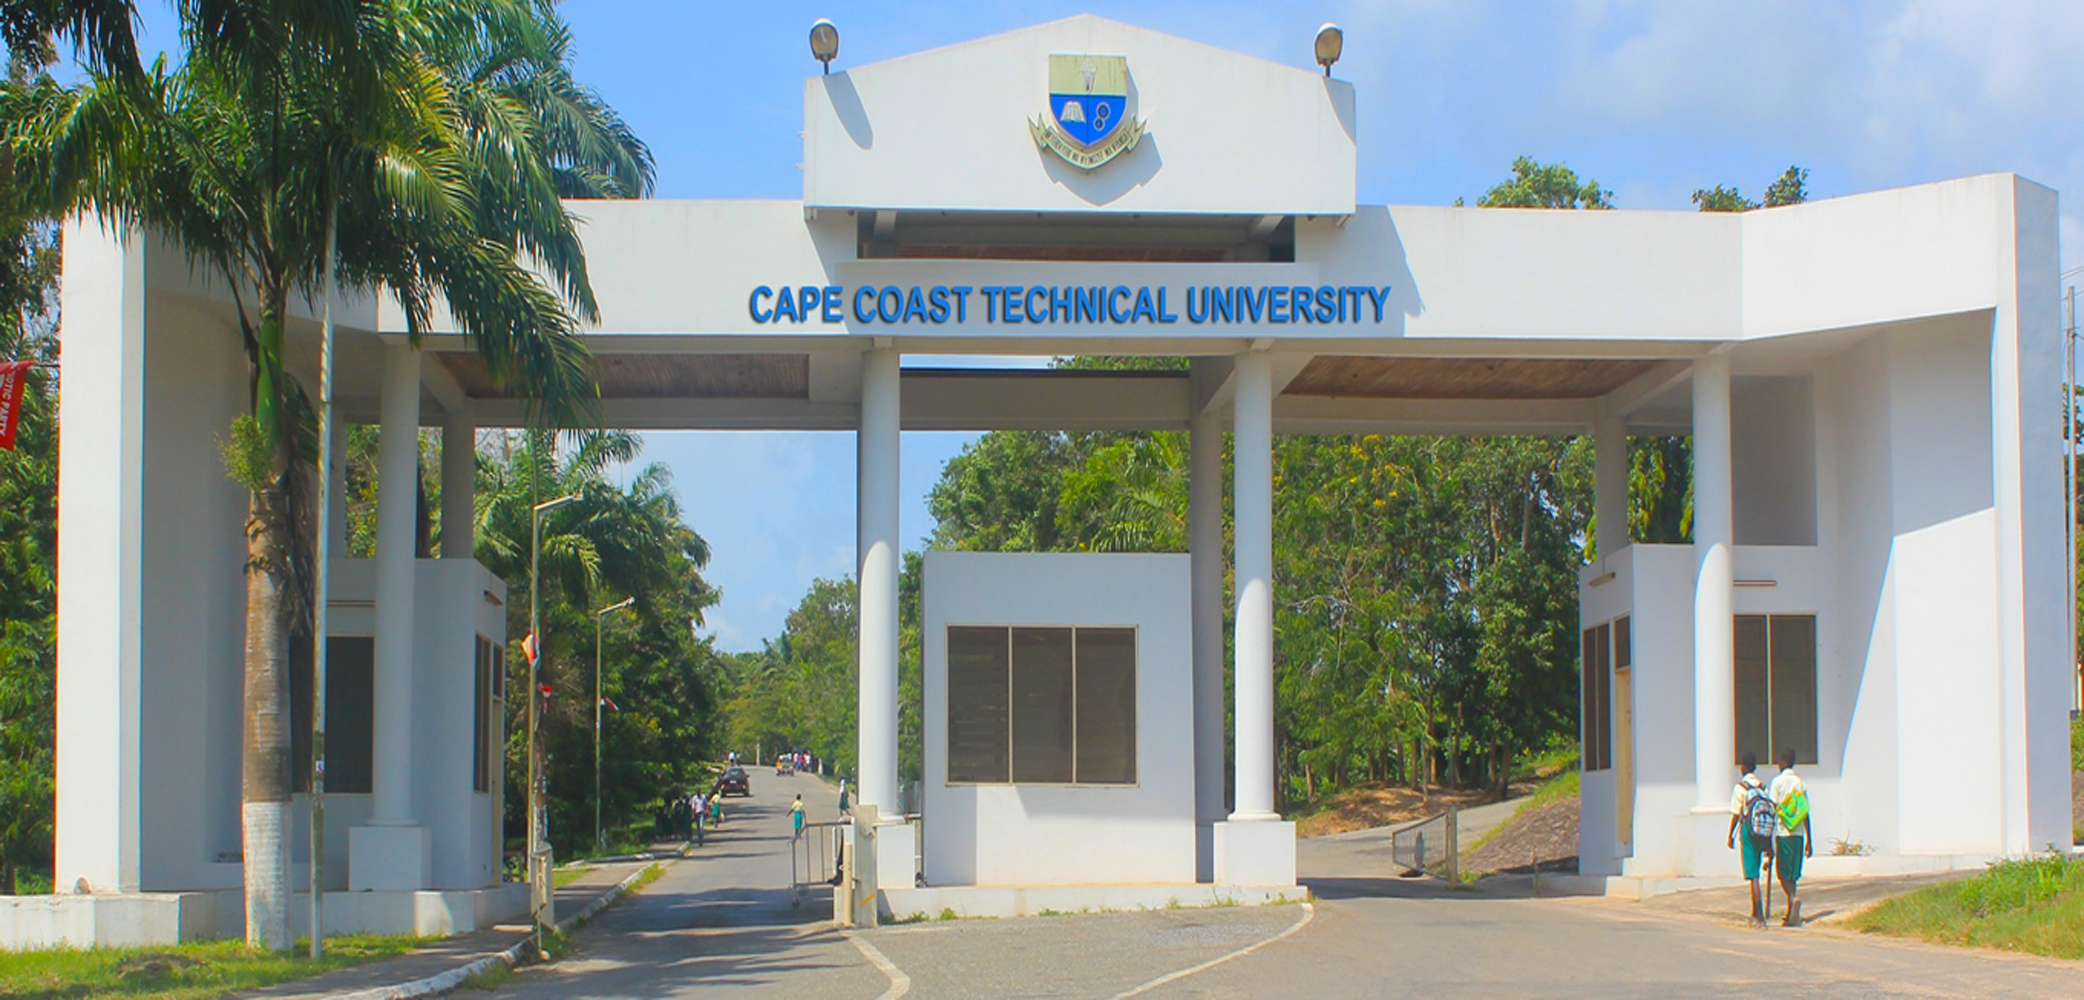 cape coast polytechnic Cape coast polytechnic  cape coast polytechnic was established in 1984 as a second cycle institution in 1986, it operated under the administration of ghana education service to offer intermediate courses leading to the award of non-tertiary certificates.